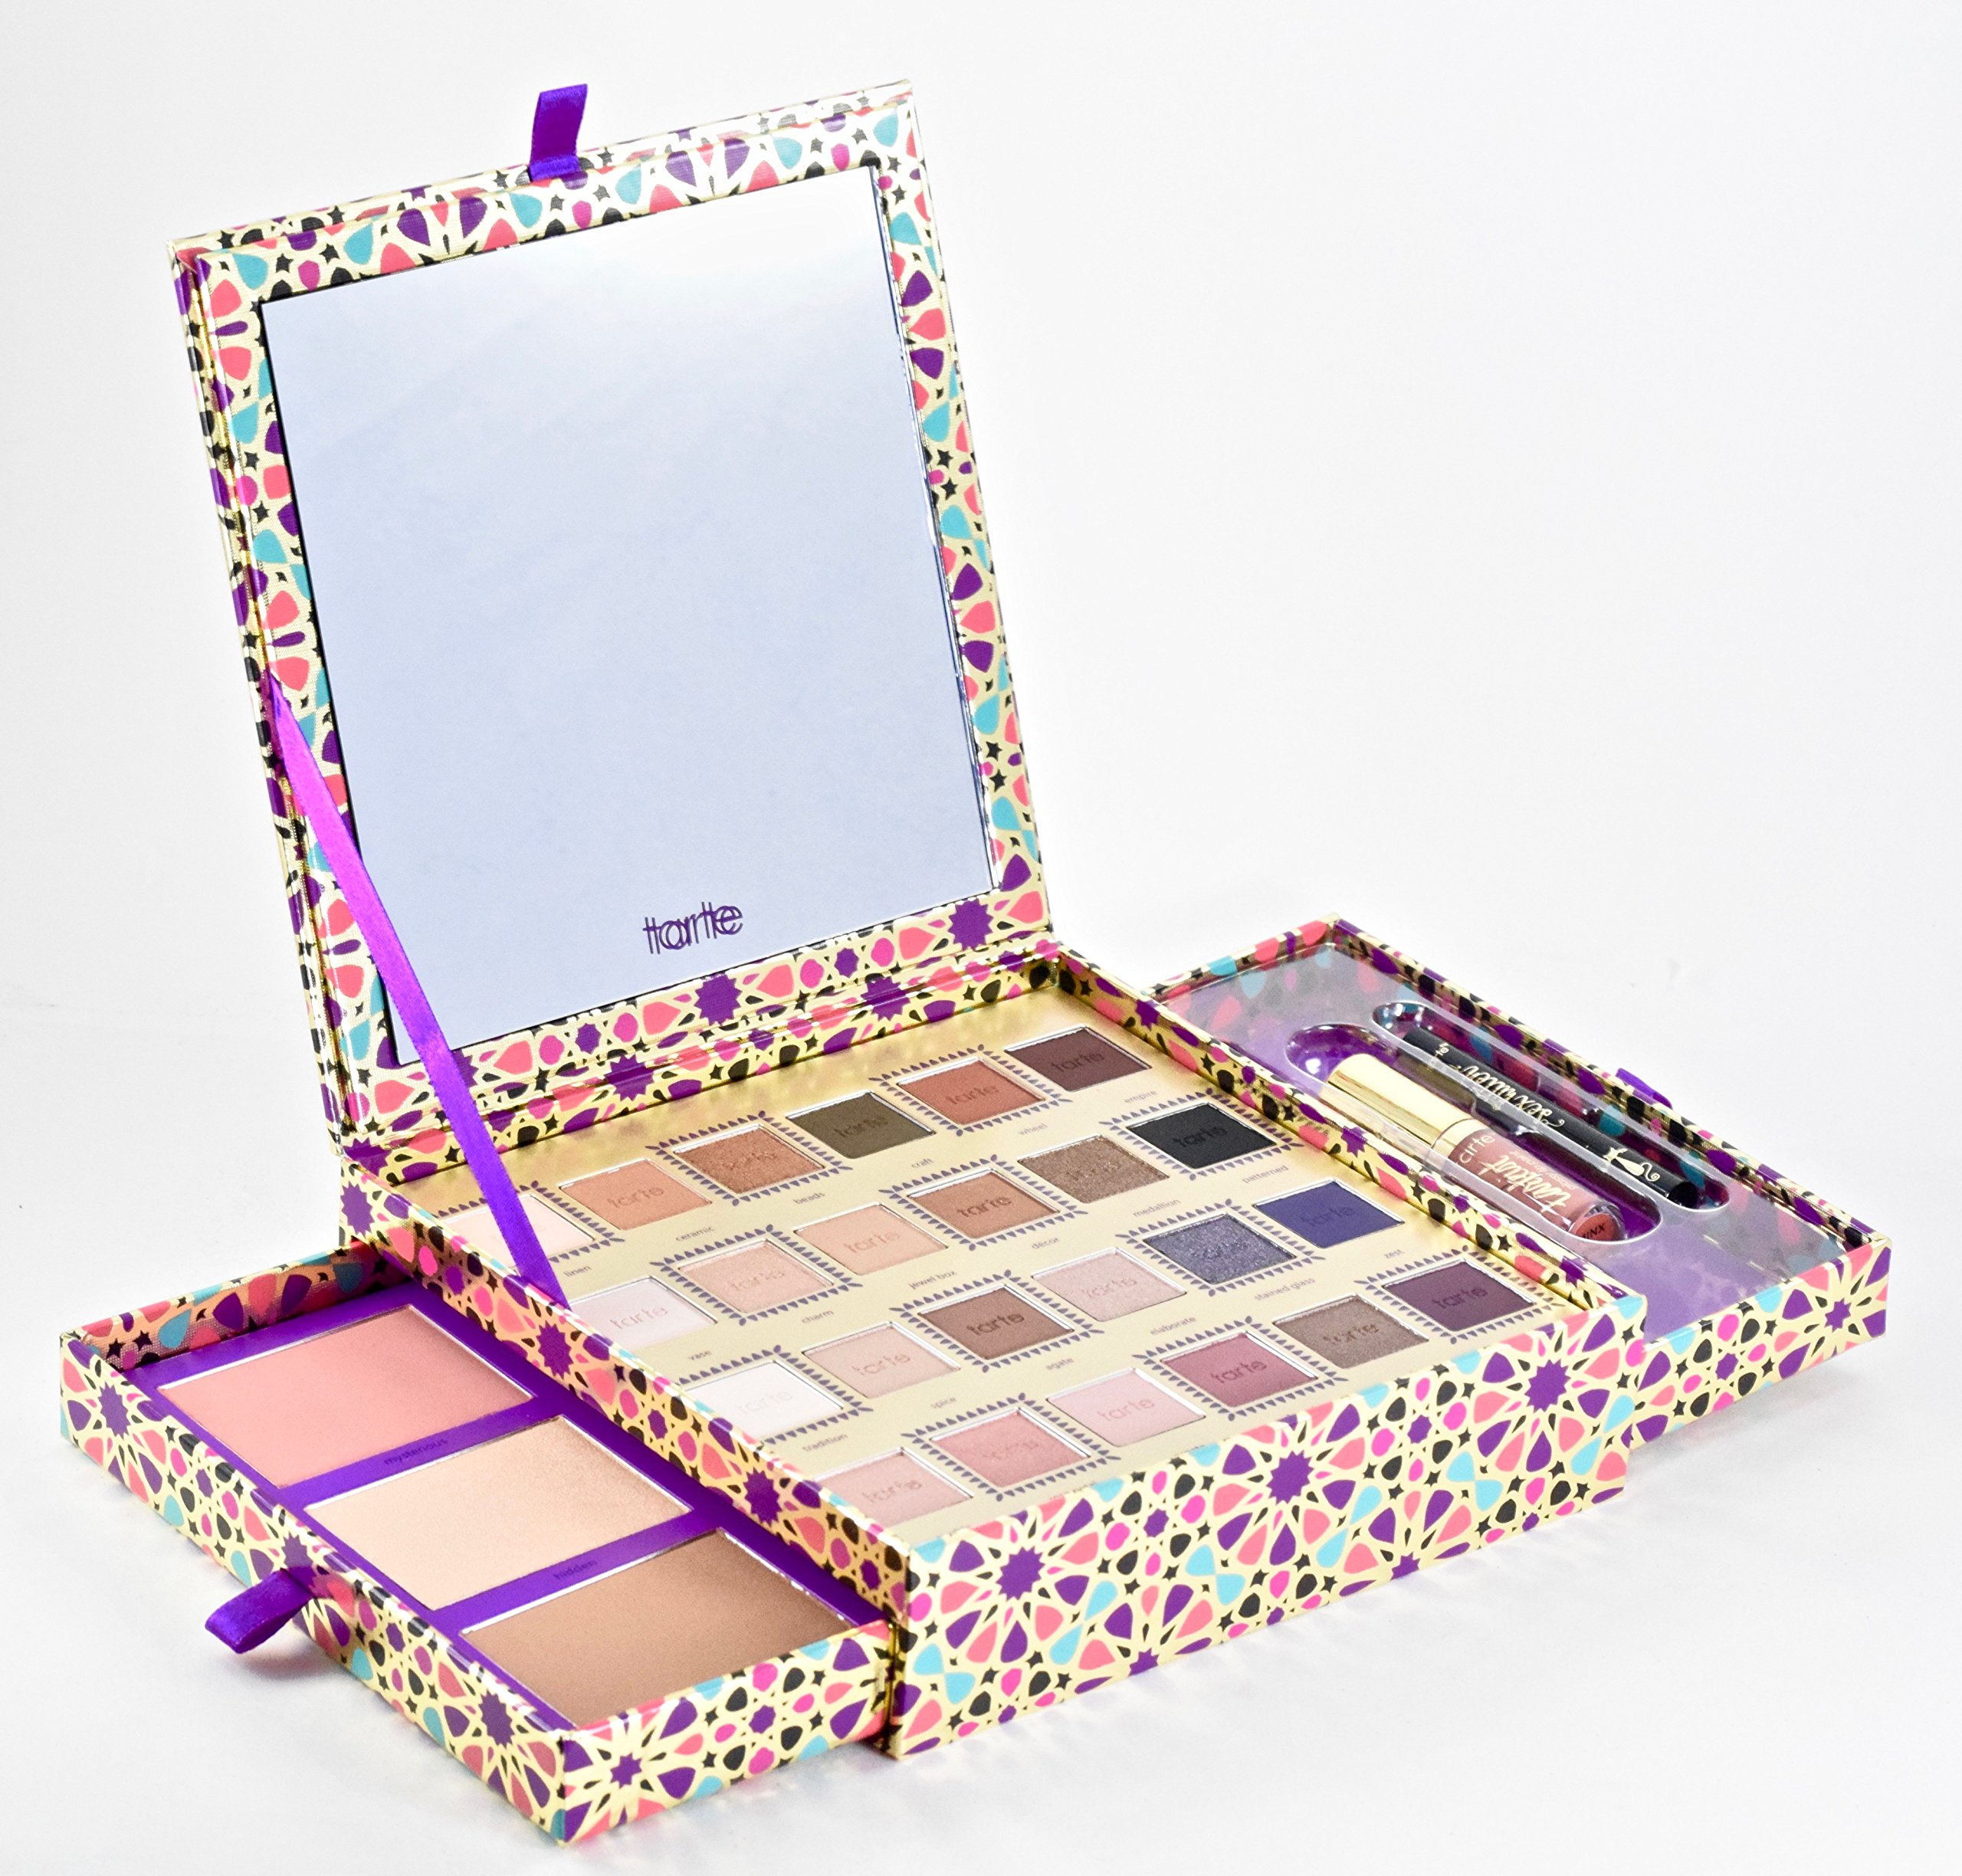 Tarte - Tarte Tarteist Trove Makeup Kit Holiday Collector's Set